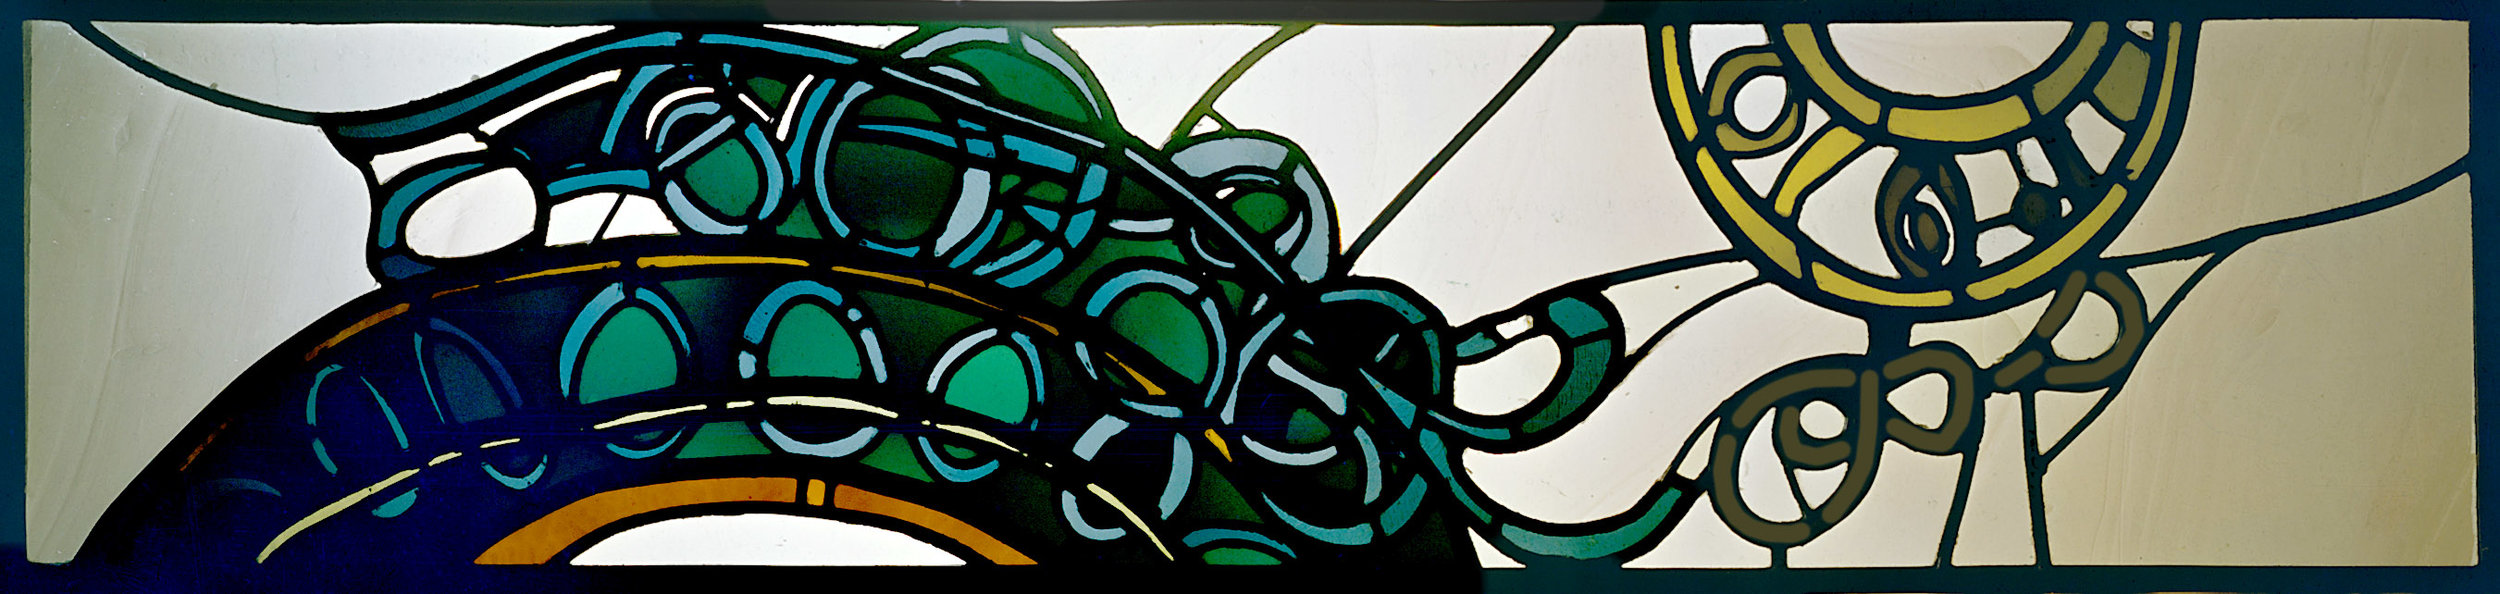 Muir Beach (1976)   Leaded Glass, Private Collection